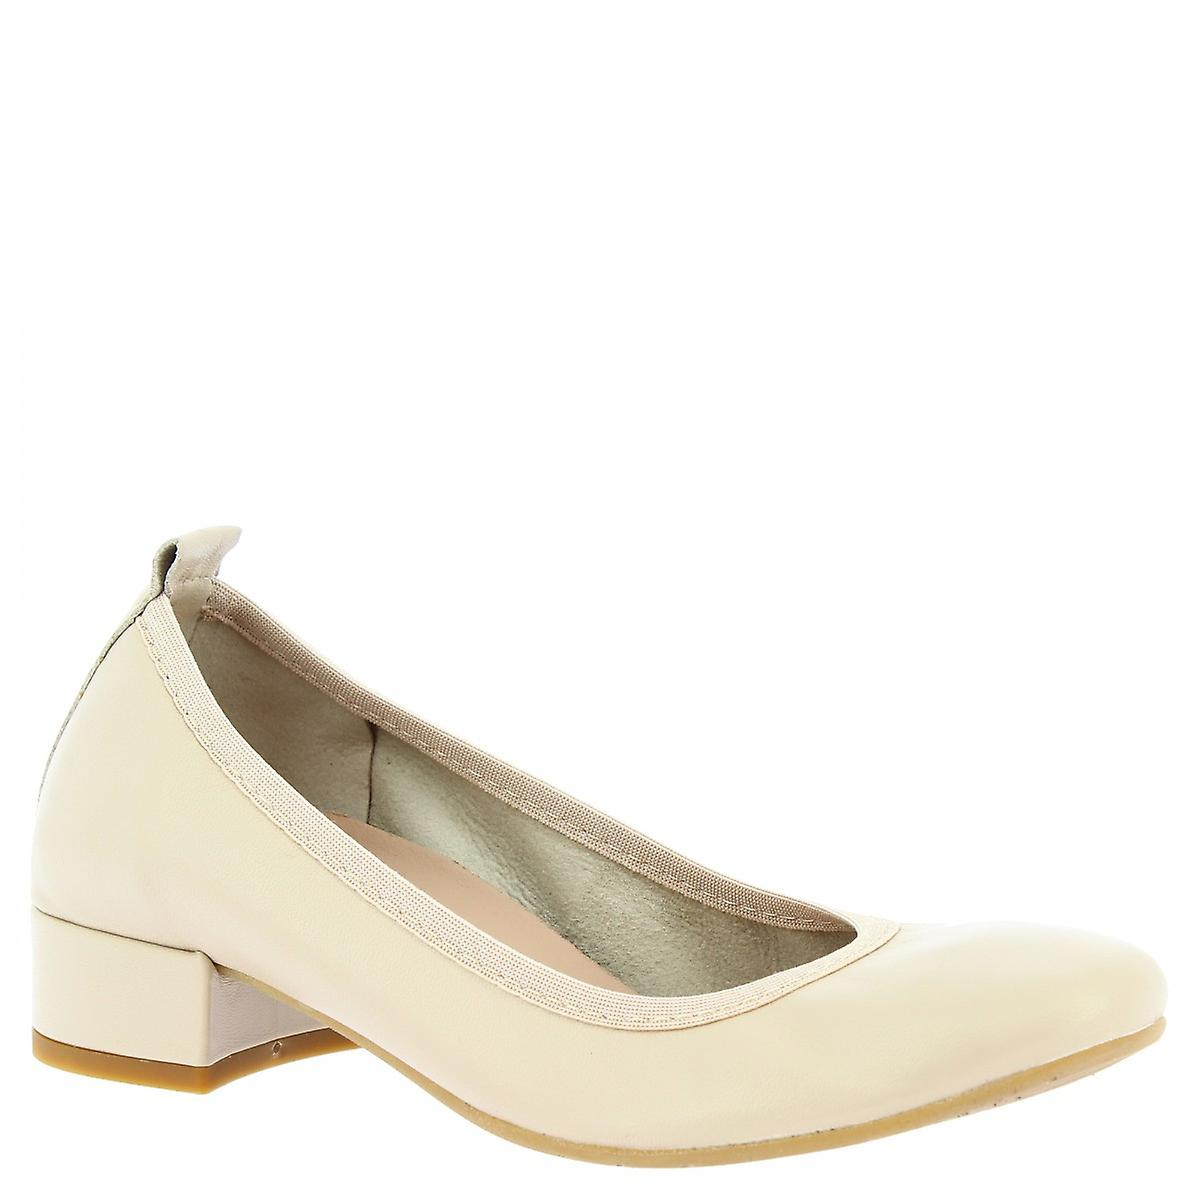 Leonardo Shoes Women's handmade low heeled ballet flats in beige napa leather eLEdU